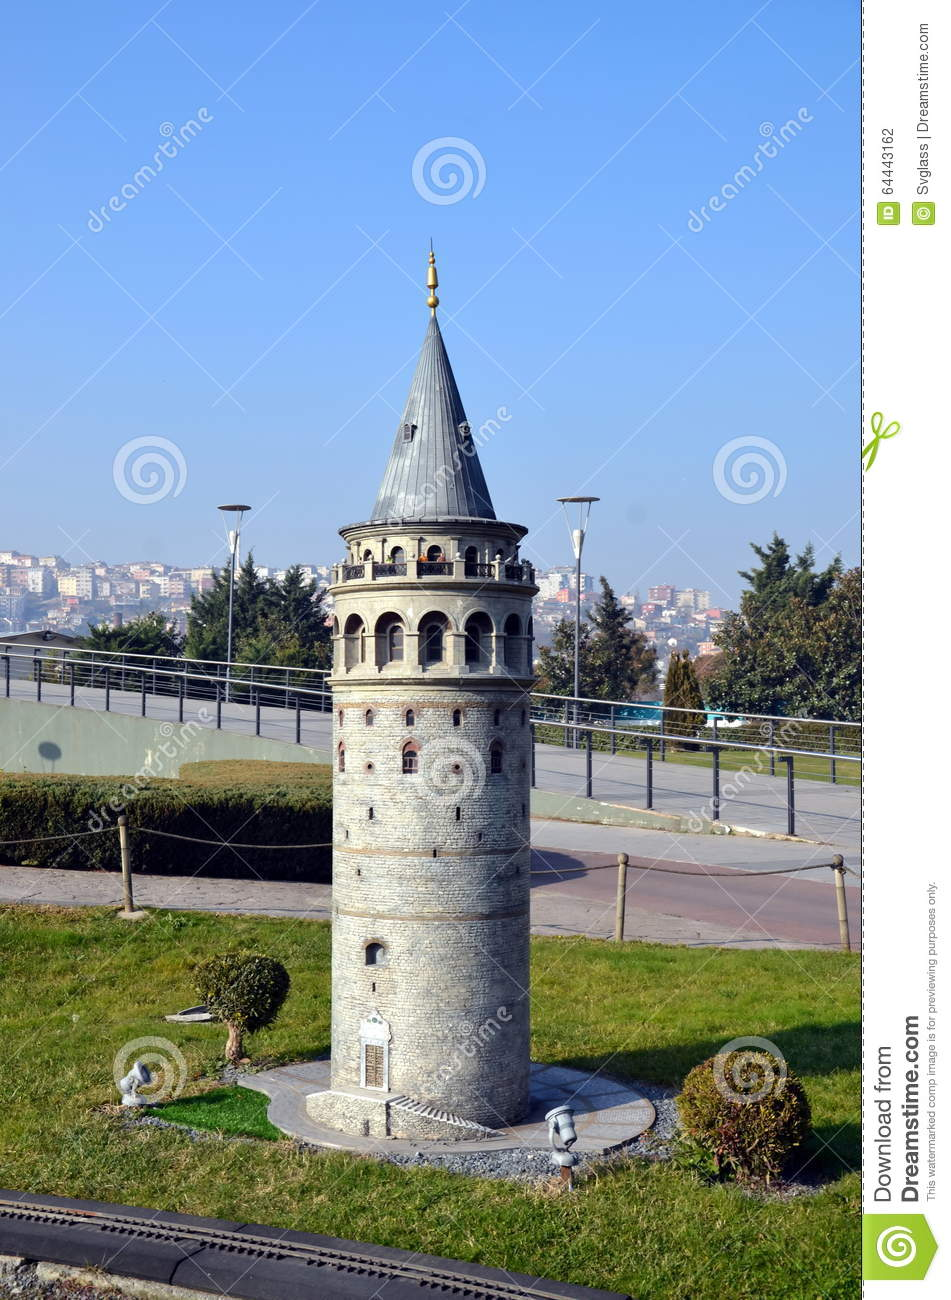 Scale model of Galata tower